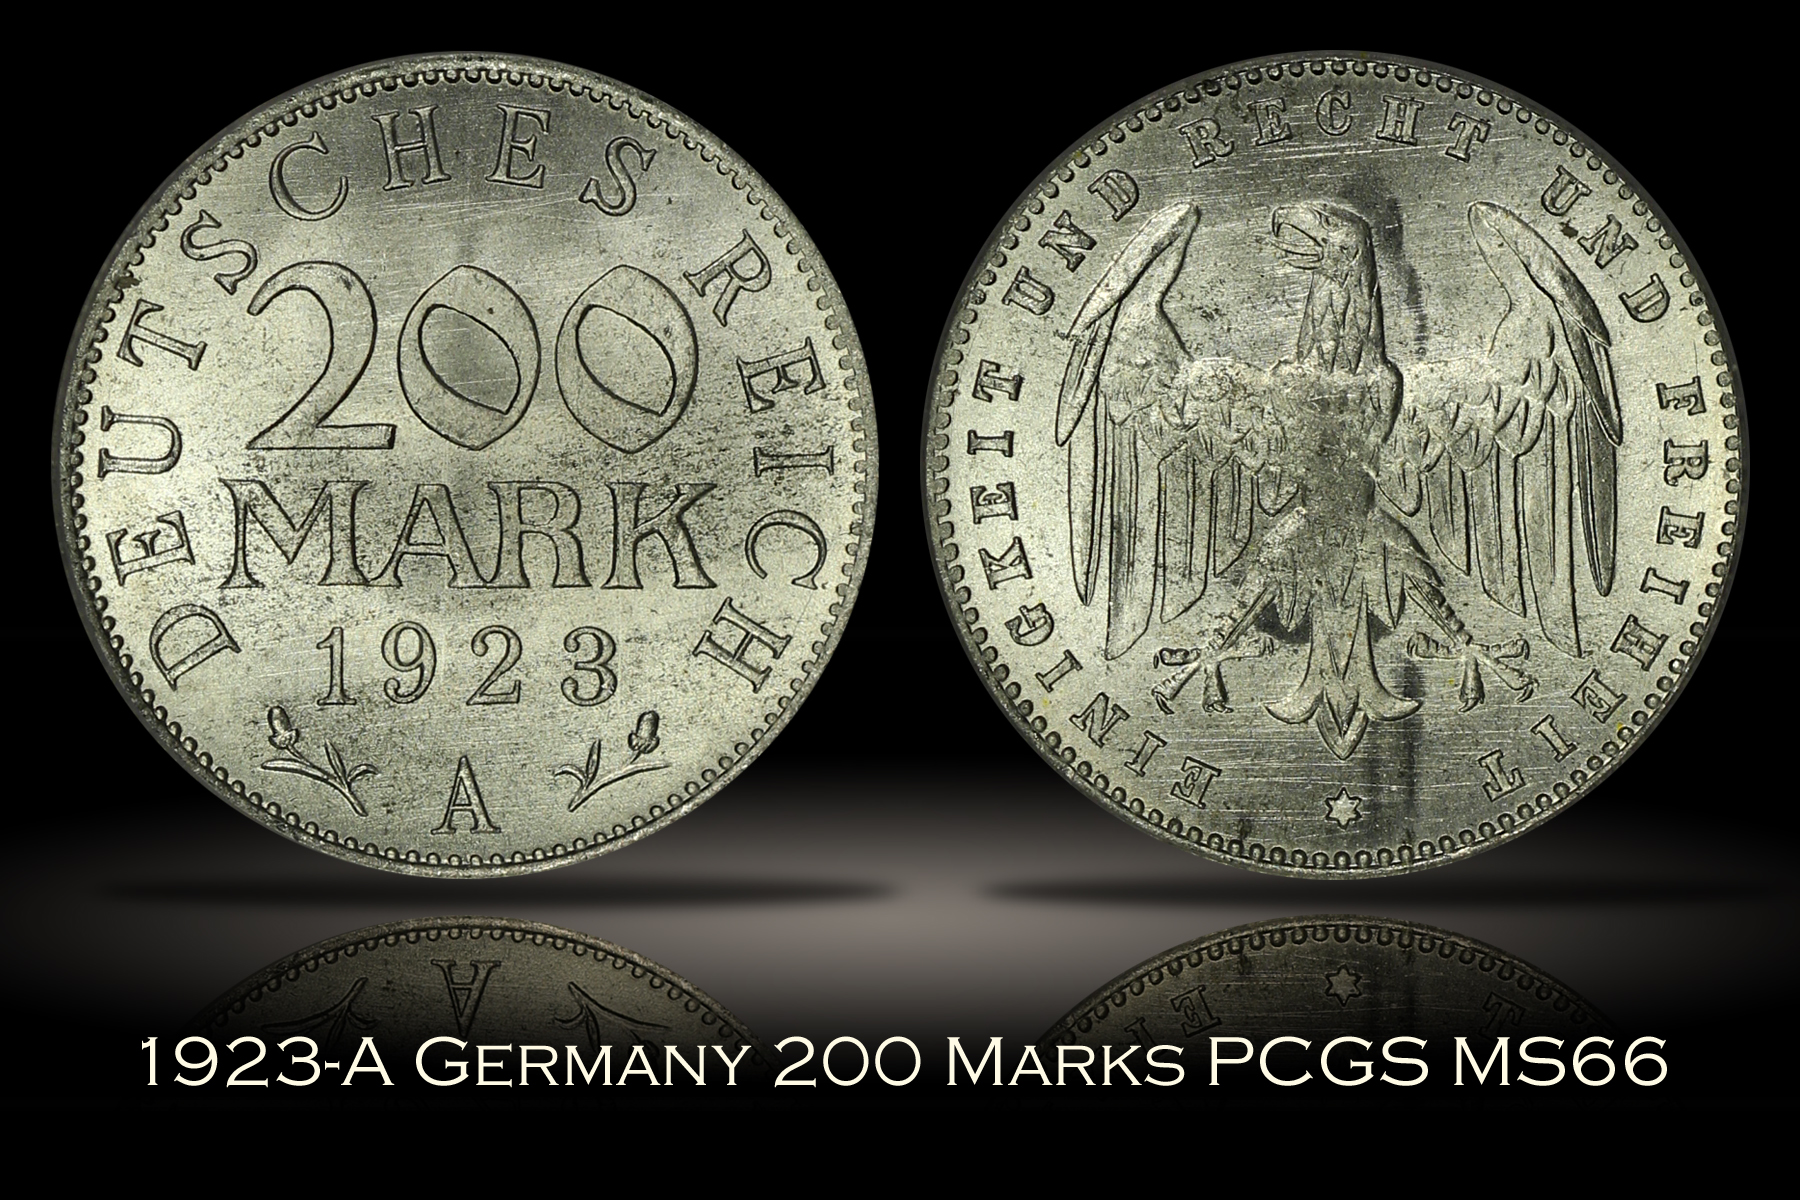 1923-A Germany 200 Mark PCGS MS66